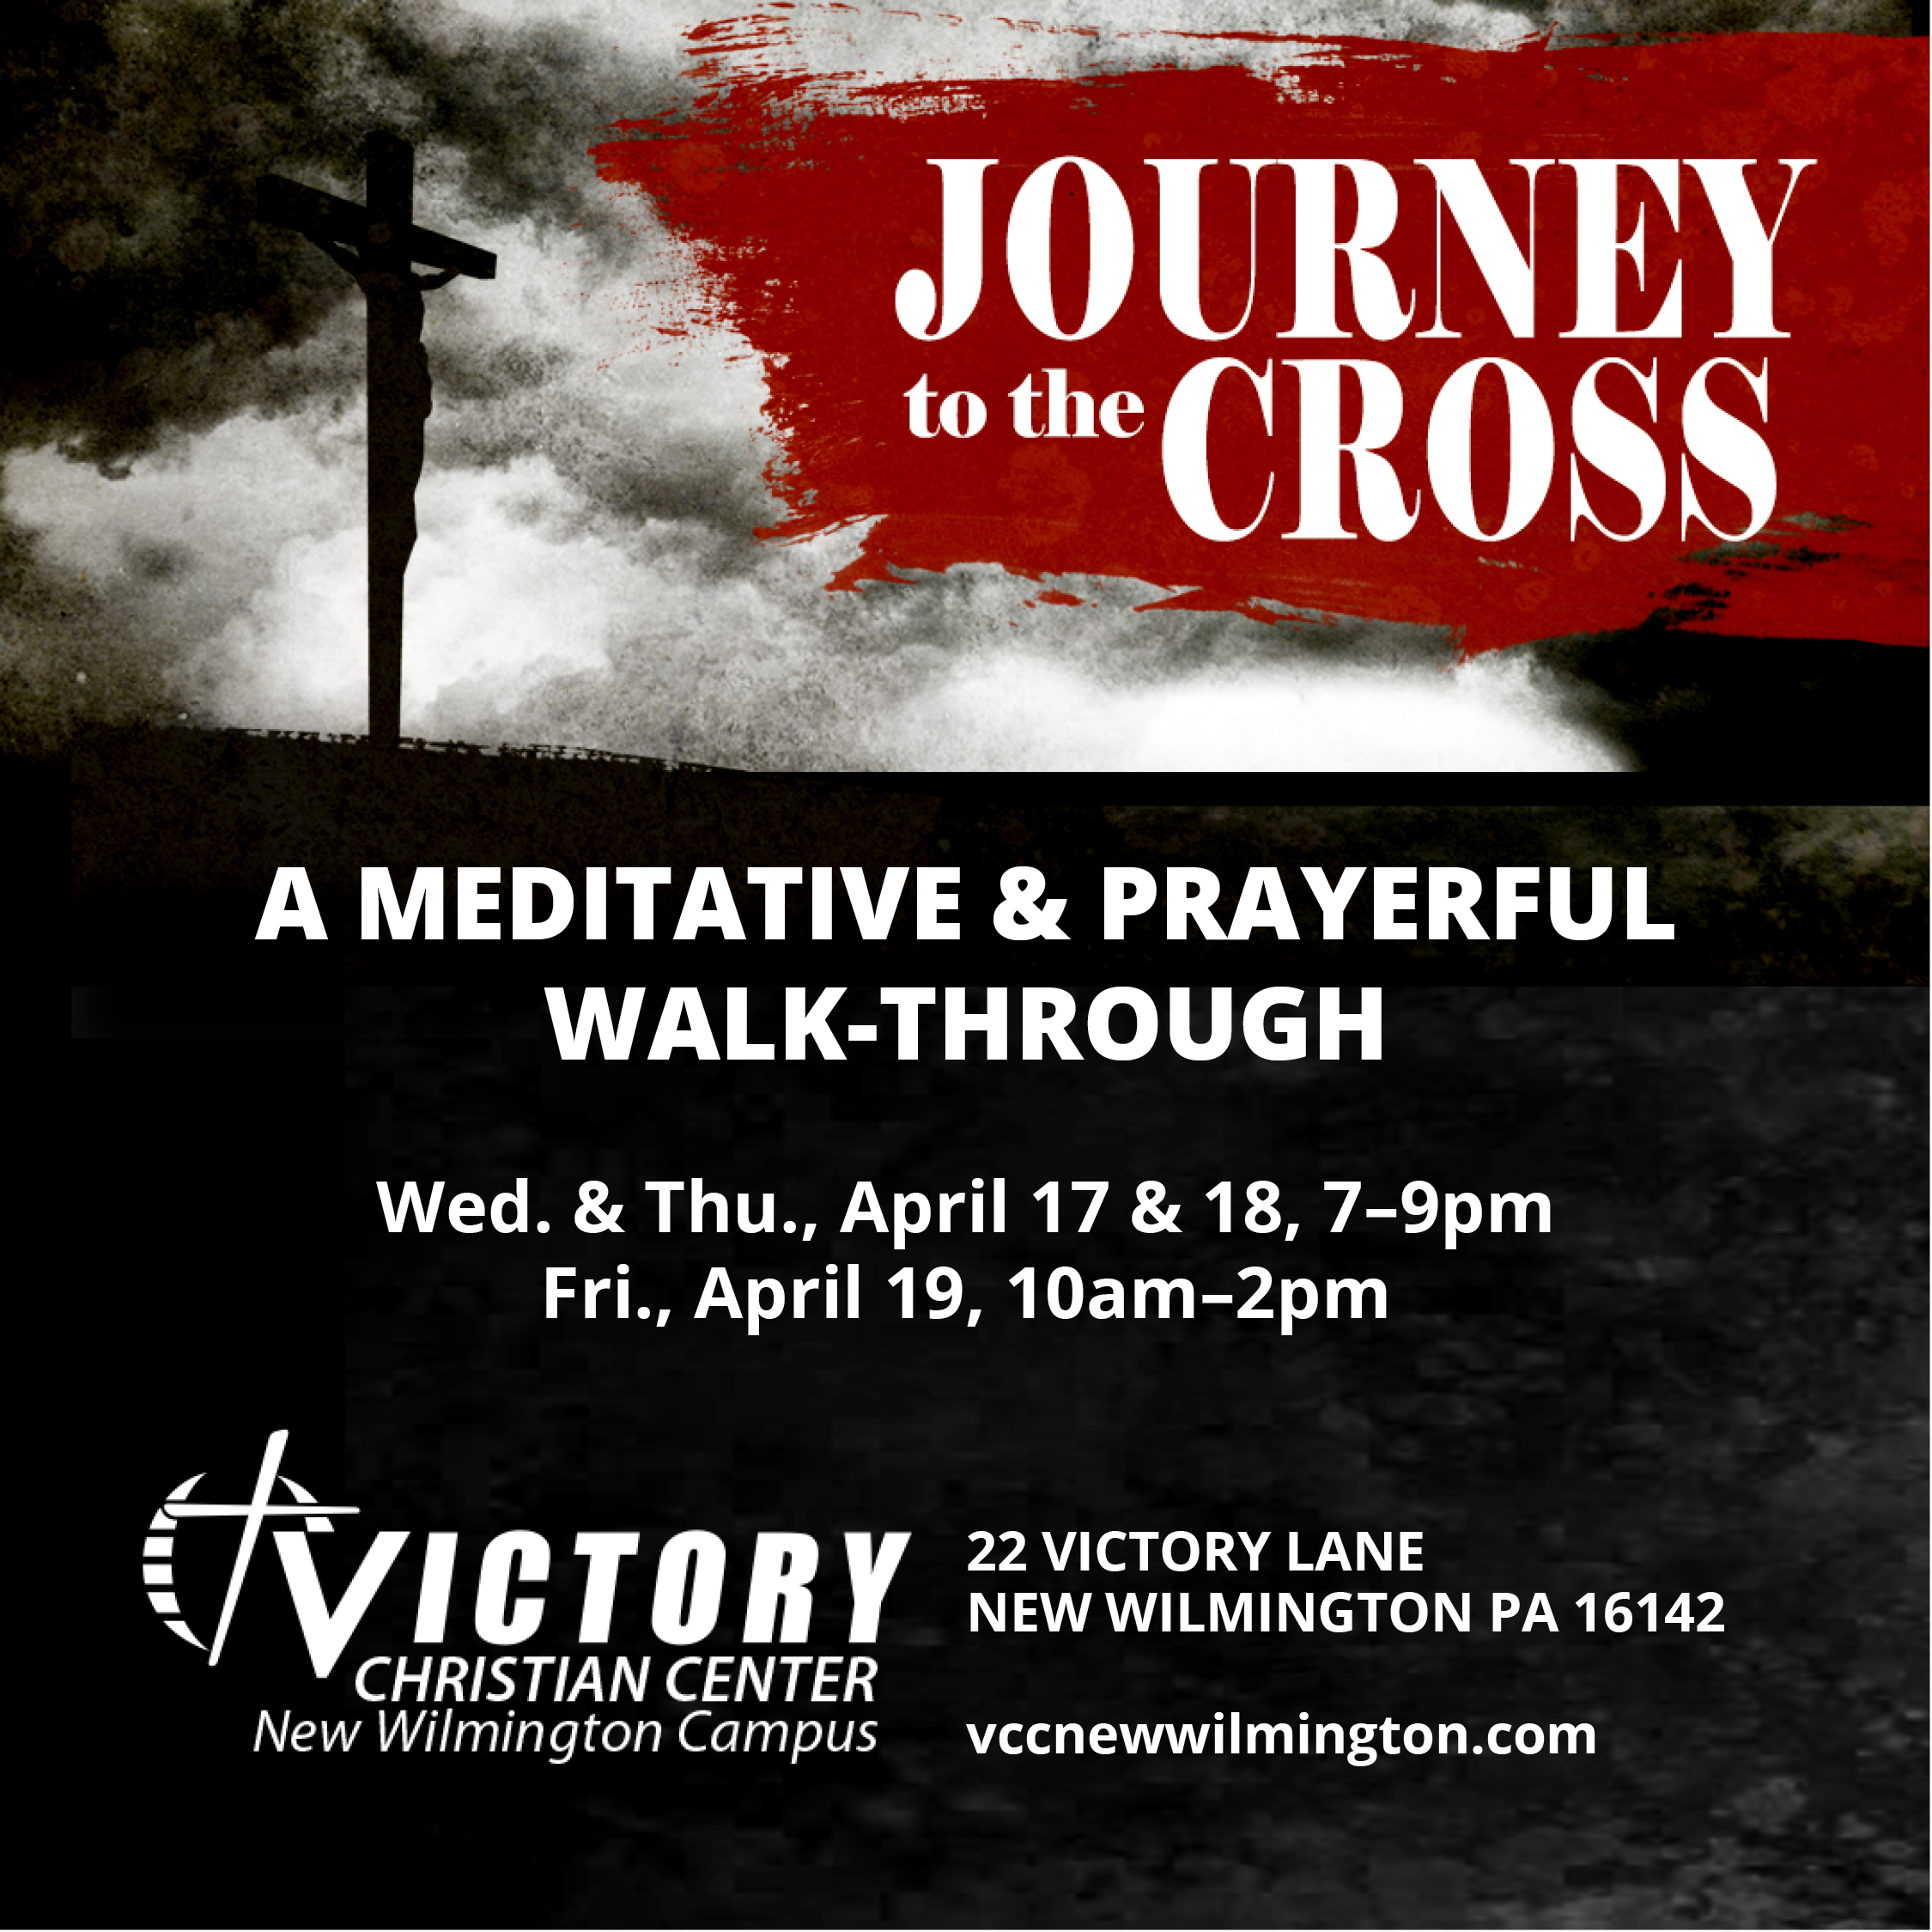 Journey to the Cross social 2019.jpg